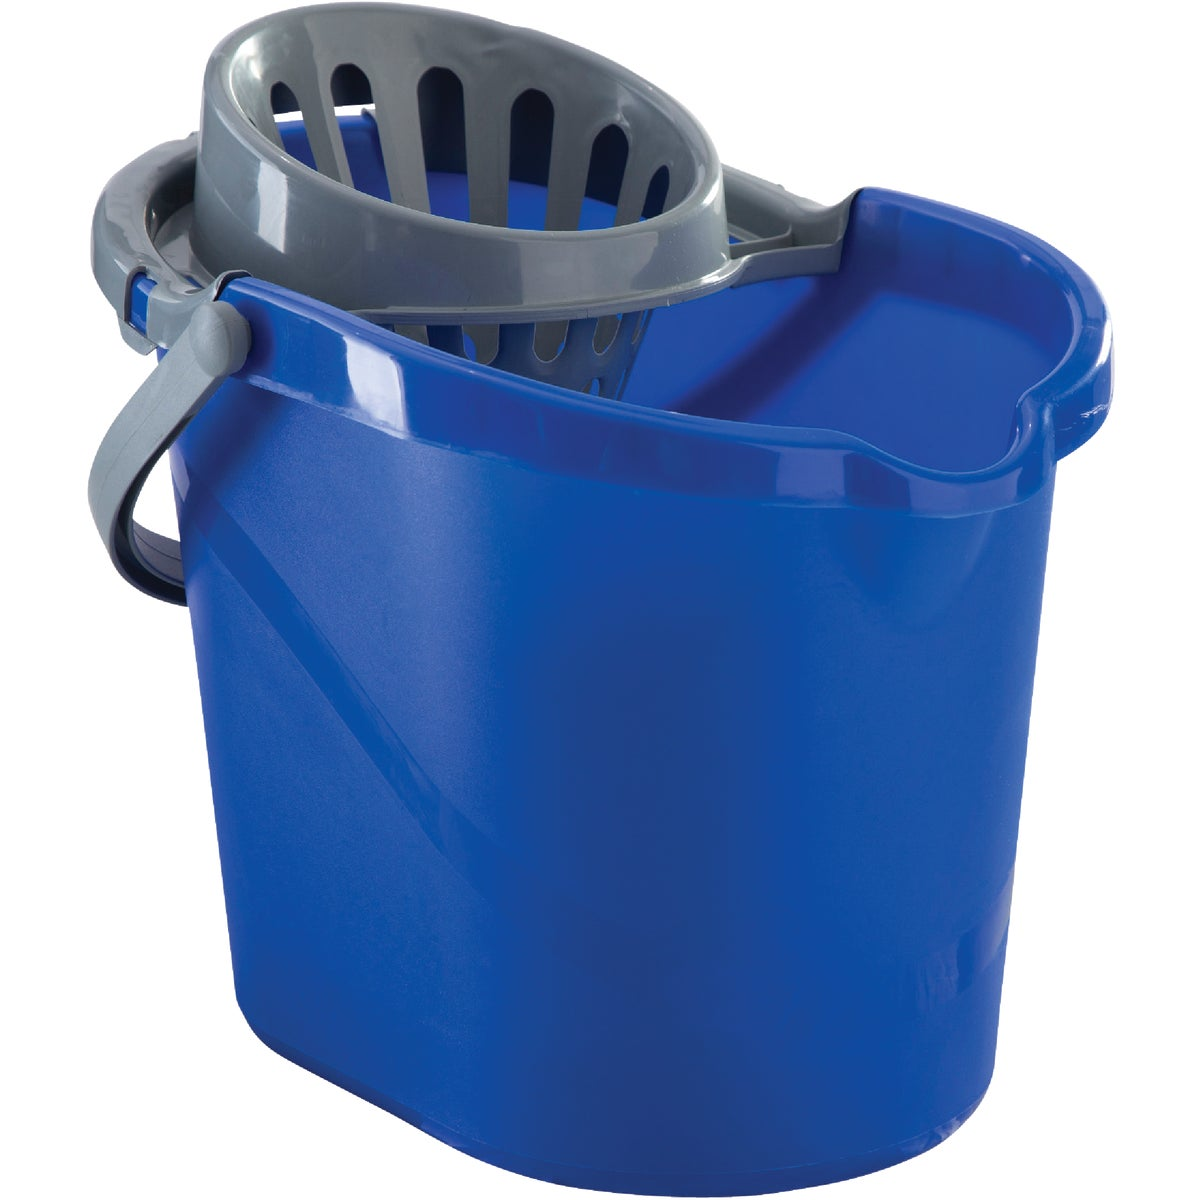 Mop Bucket With Wringer, FGG03406